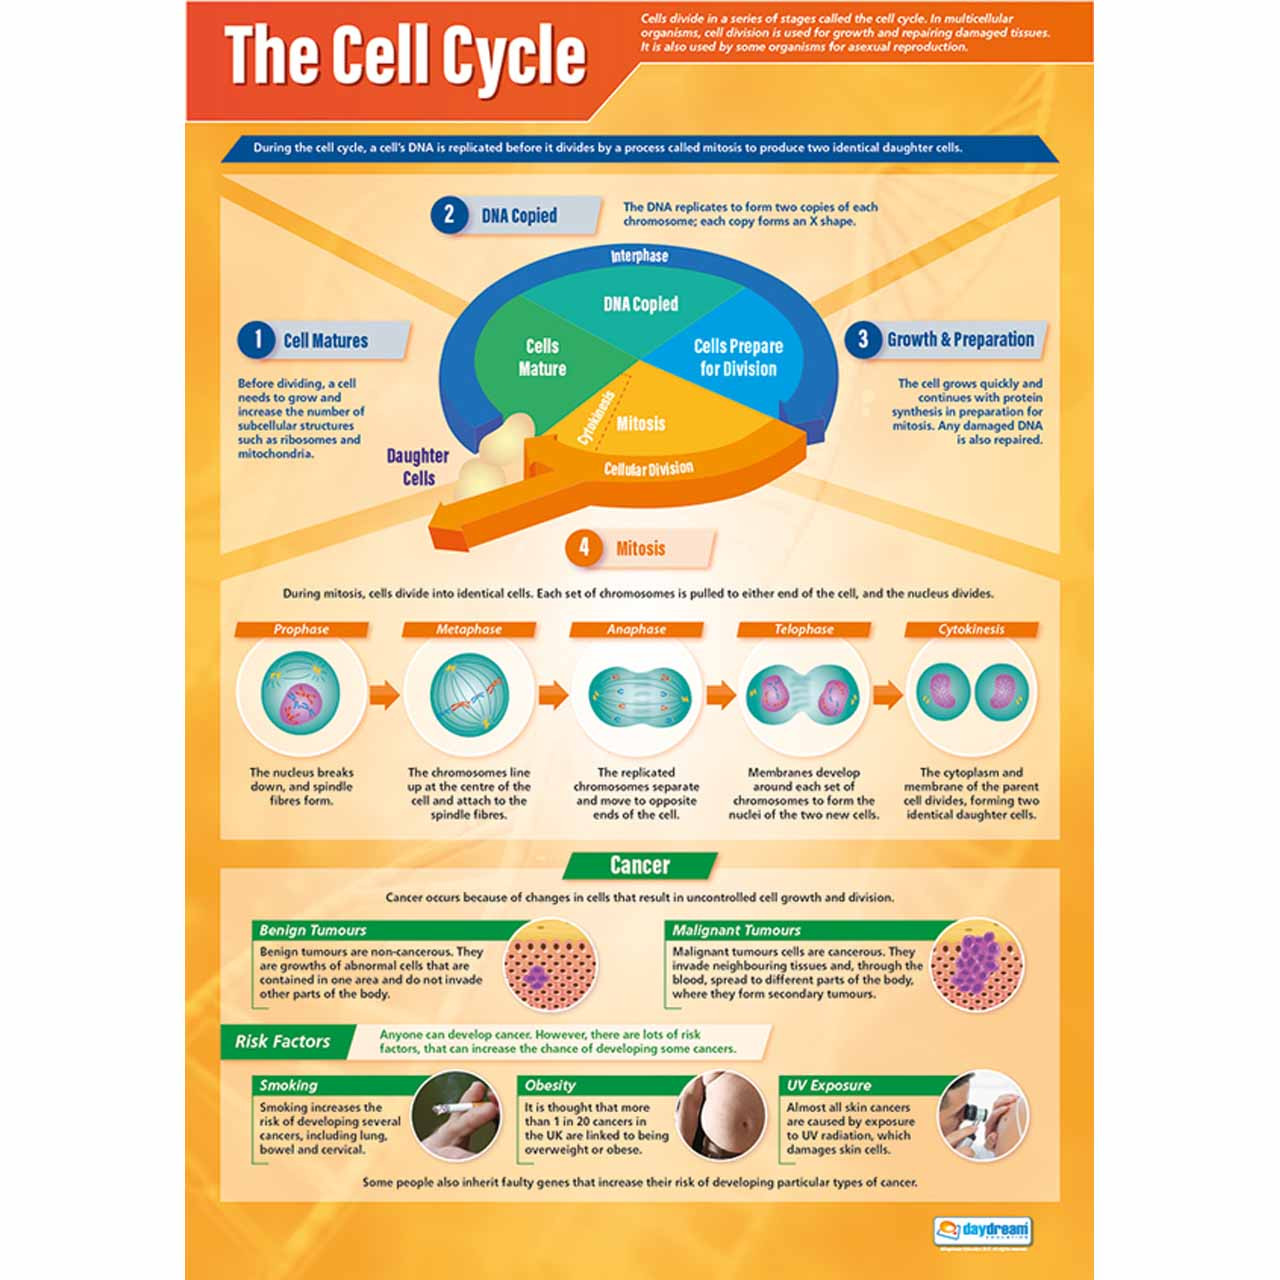 SC061L - The Cell Cycle